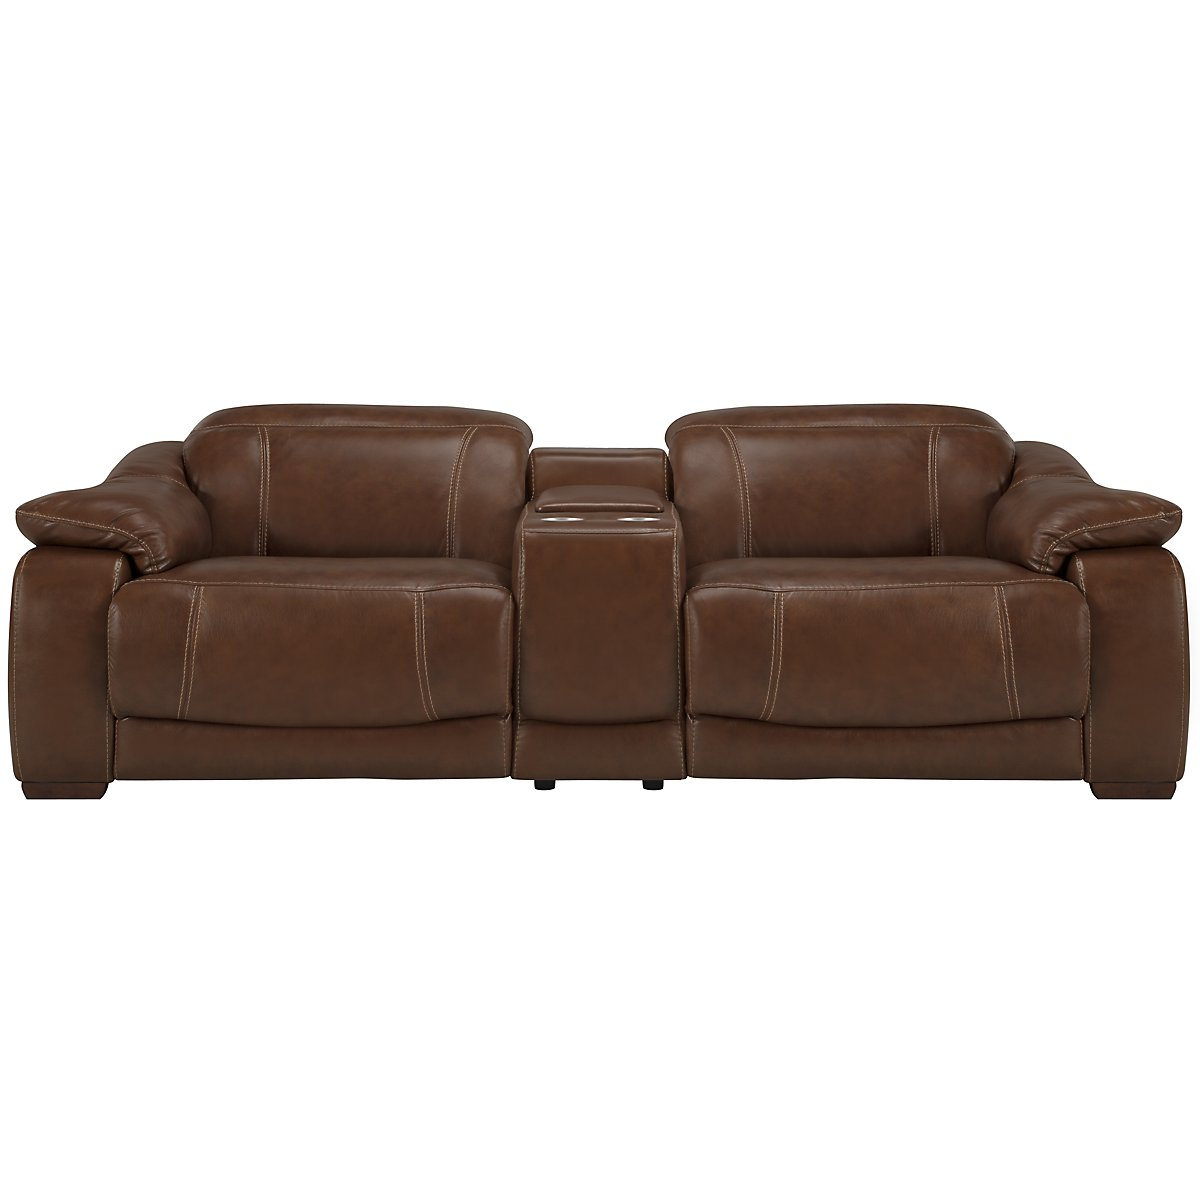 Orion Md Brown Leather & Bonded Leather Power Reclining Sofa